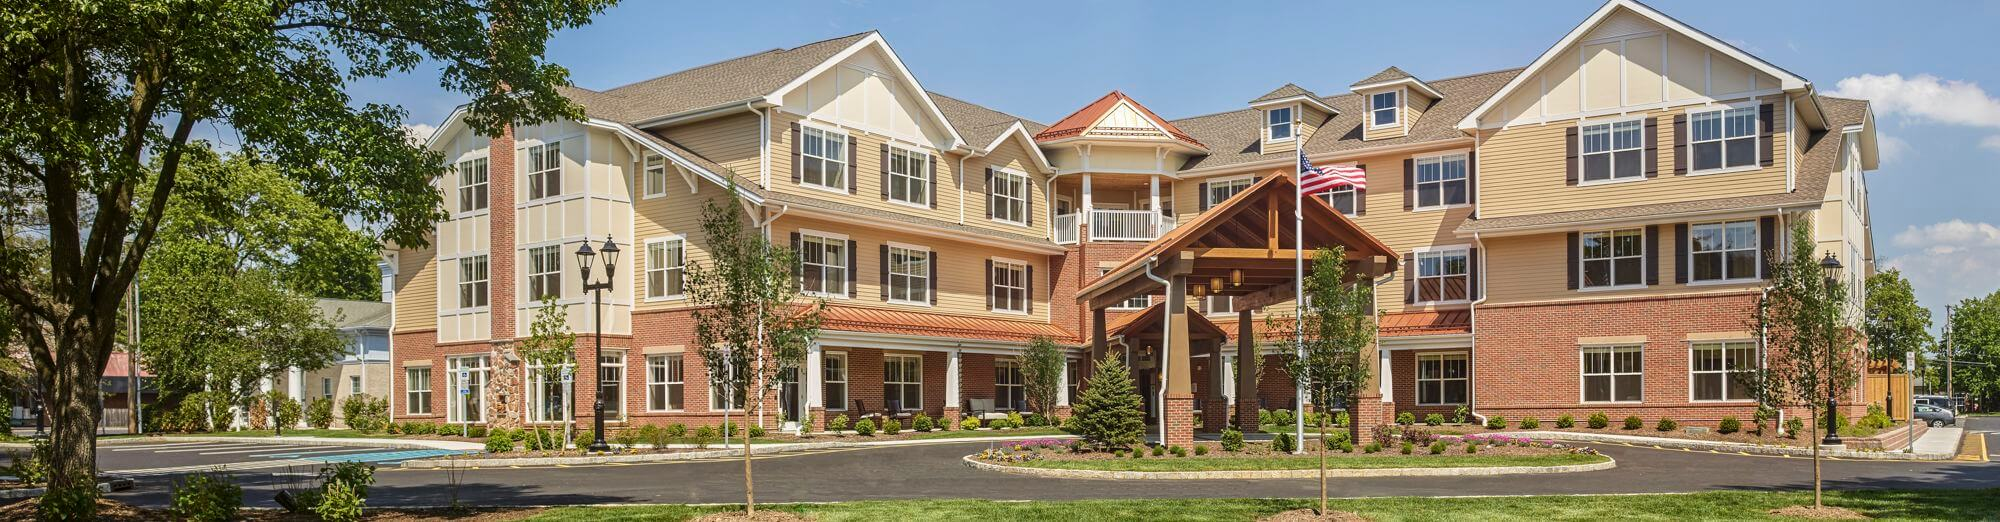 arbor-terrace-morris-plains-assisted-living-and-dementia-care